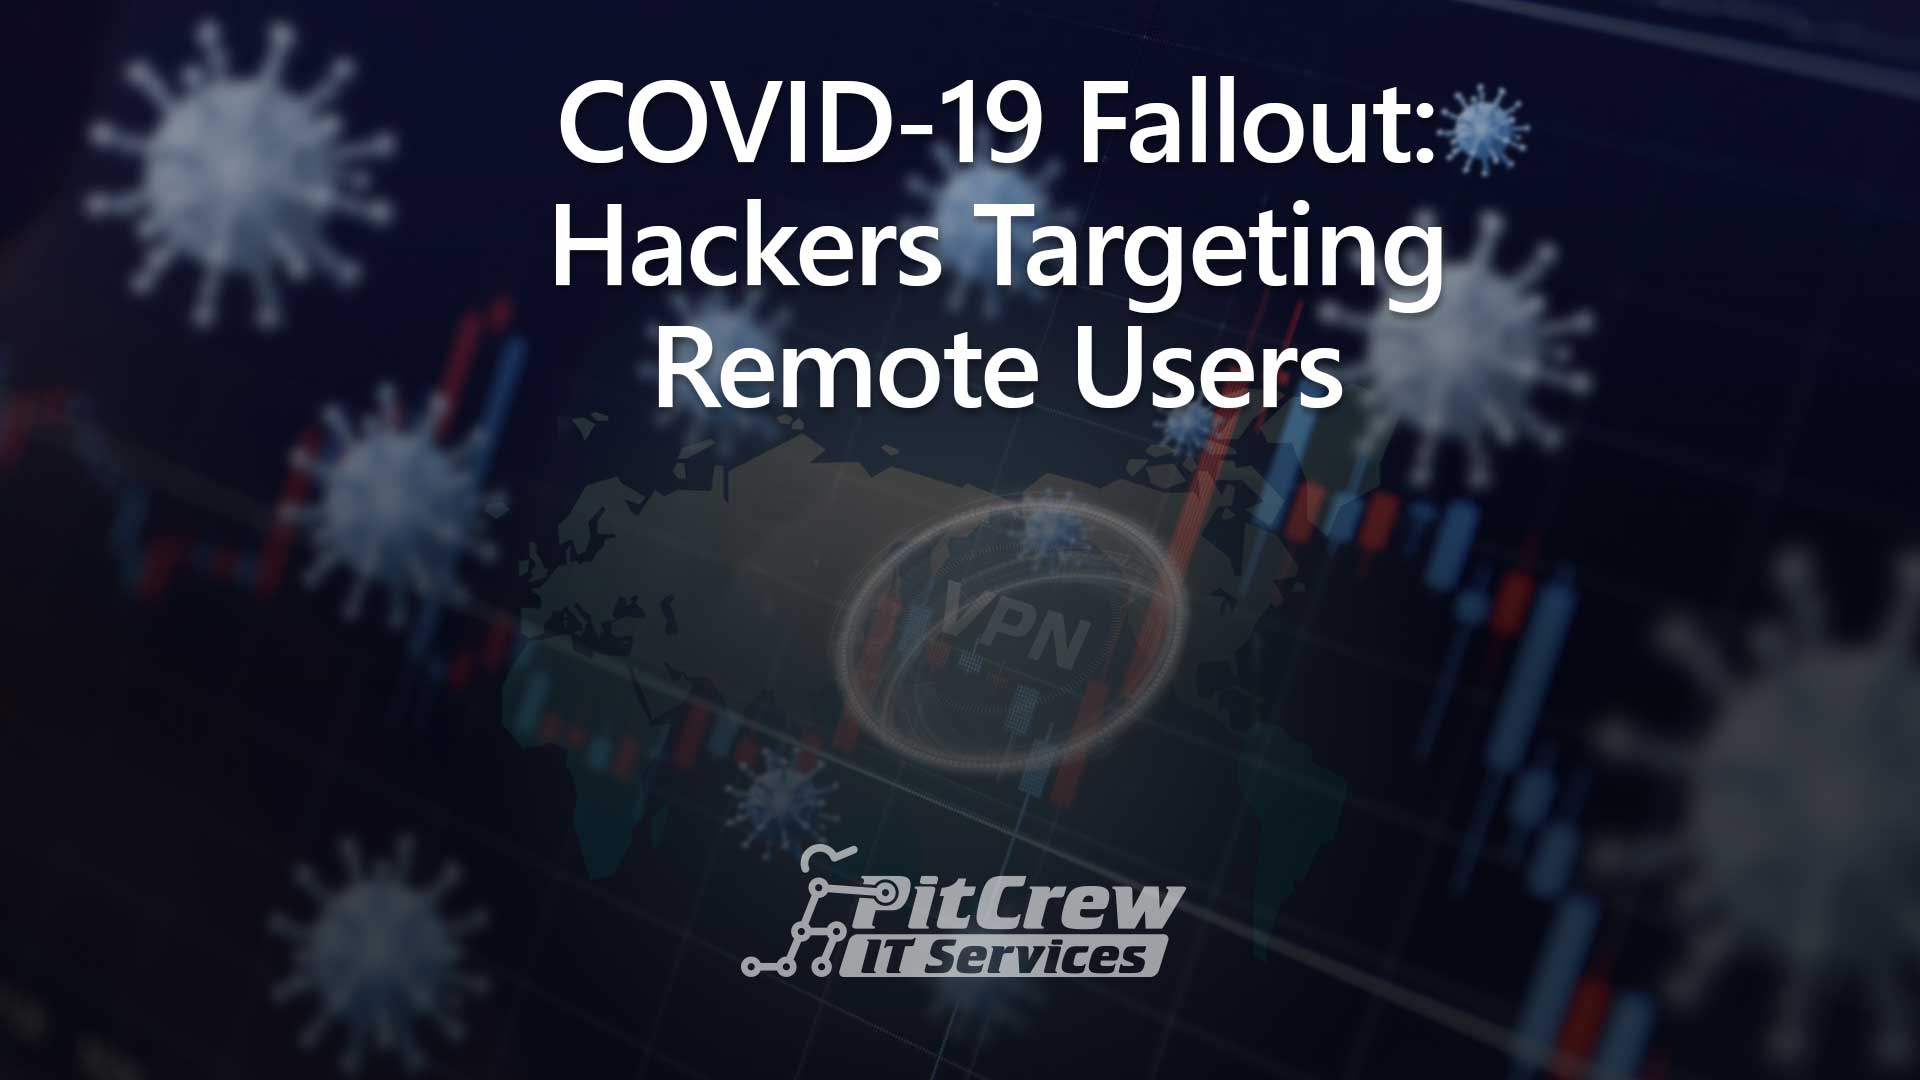 COVID-19 Fallout: Hackers Targeting Remote Users